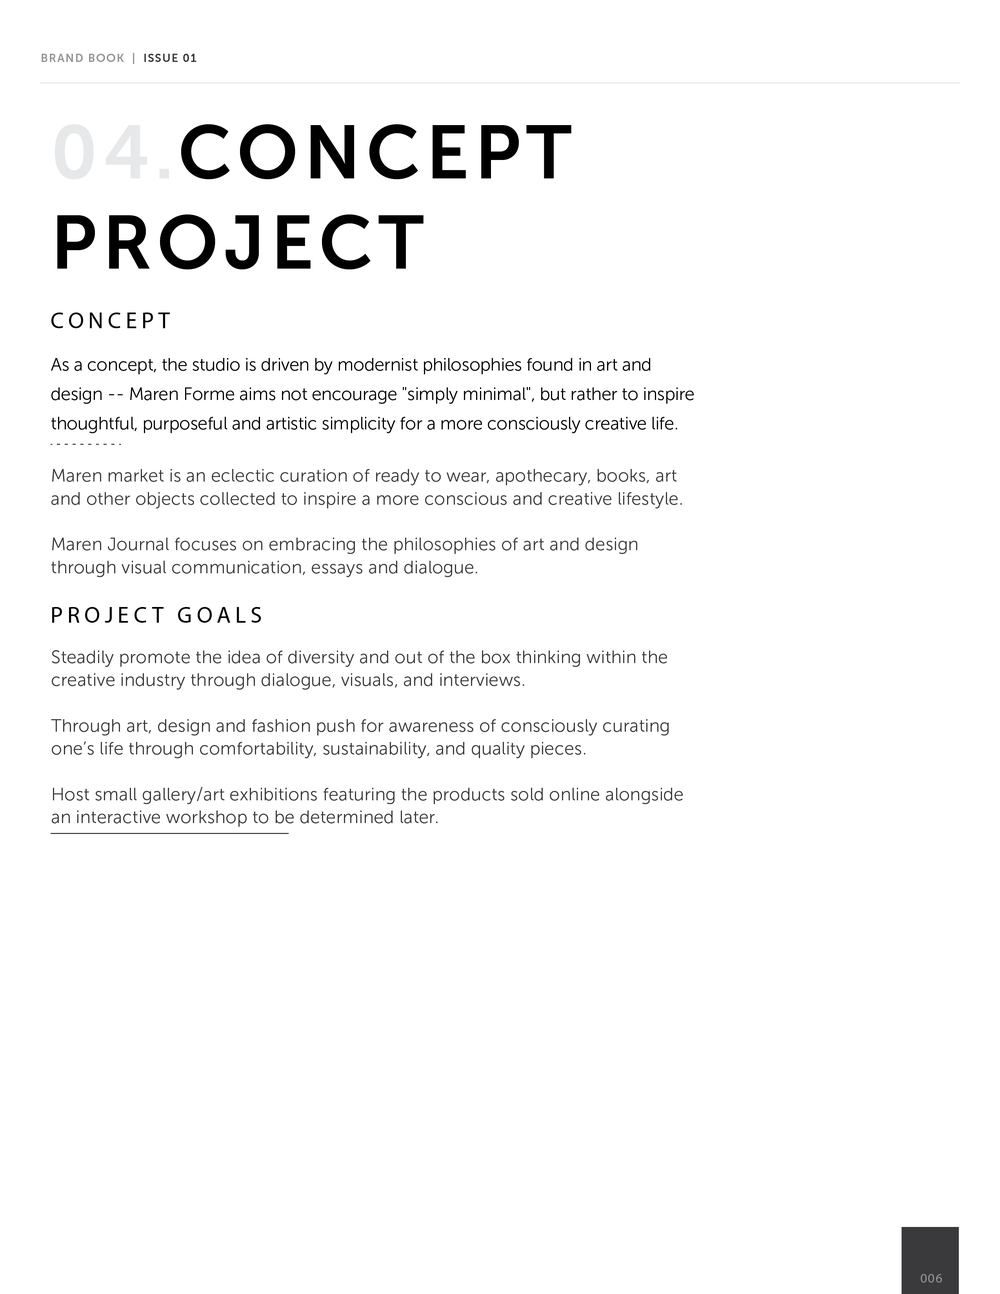 MARENFORME_PROJECTPROPOSAL_BRANDBOOK-07.png